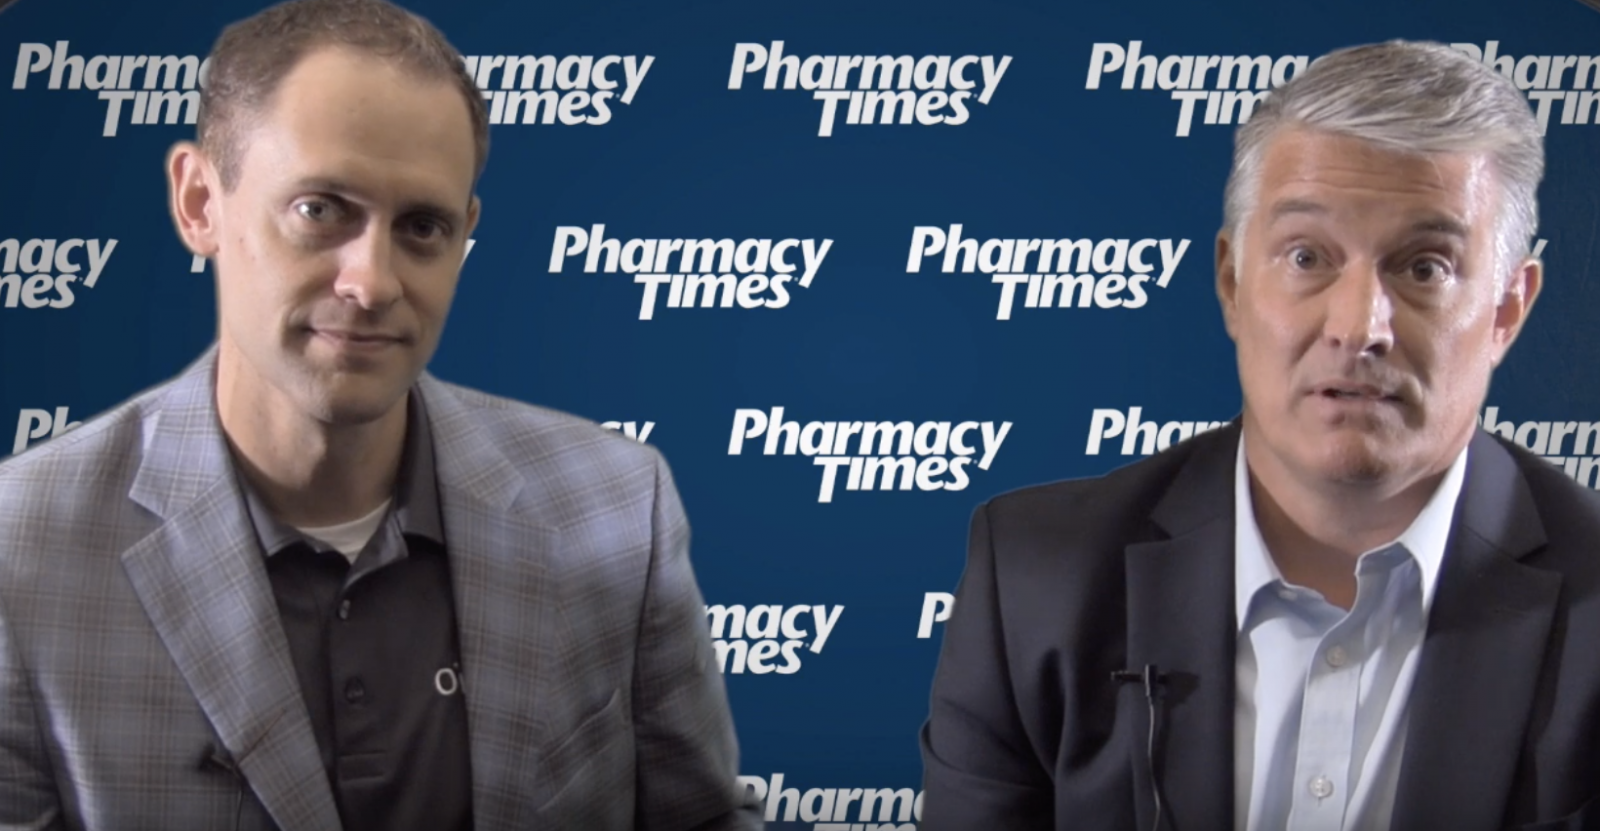 New Solutions to Pharmacy Reimbursement Concerns